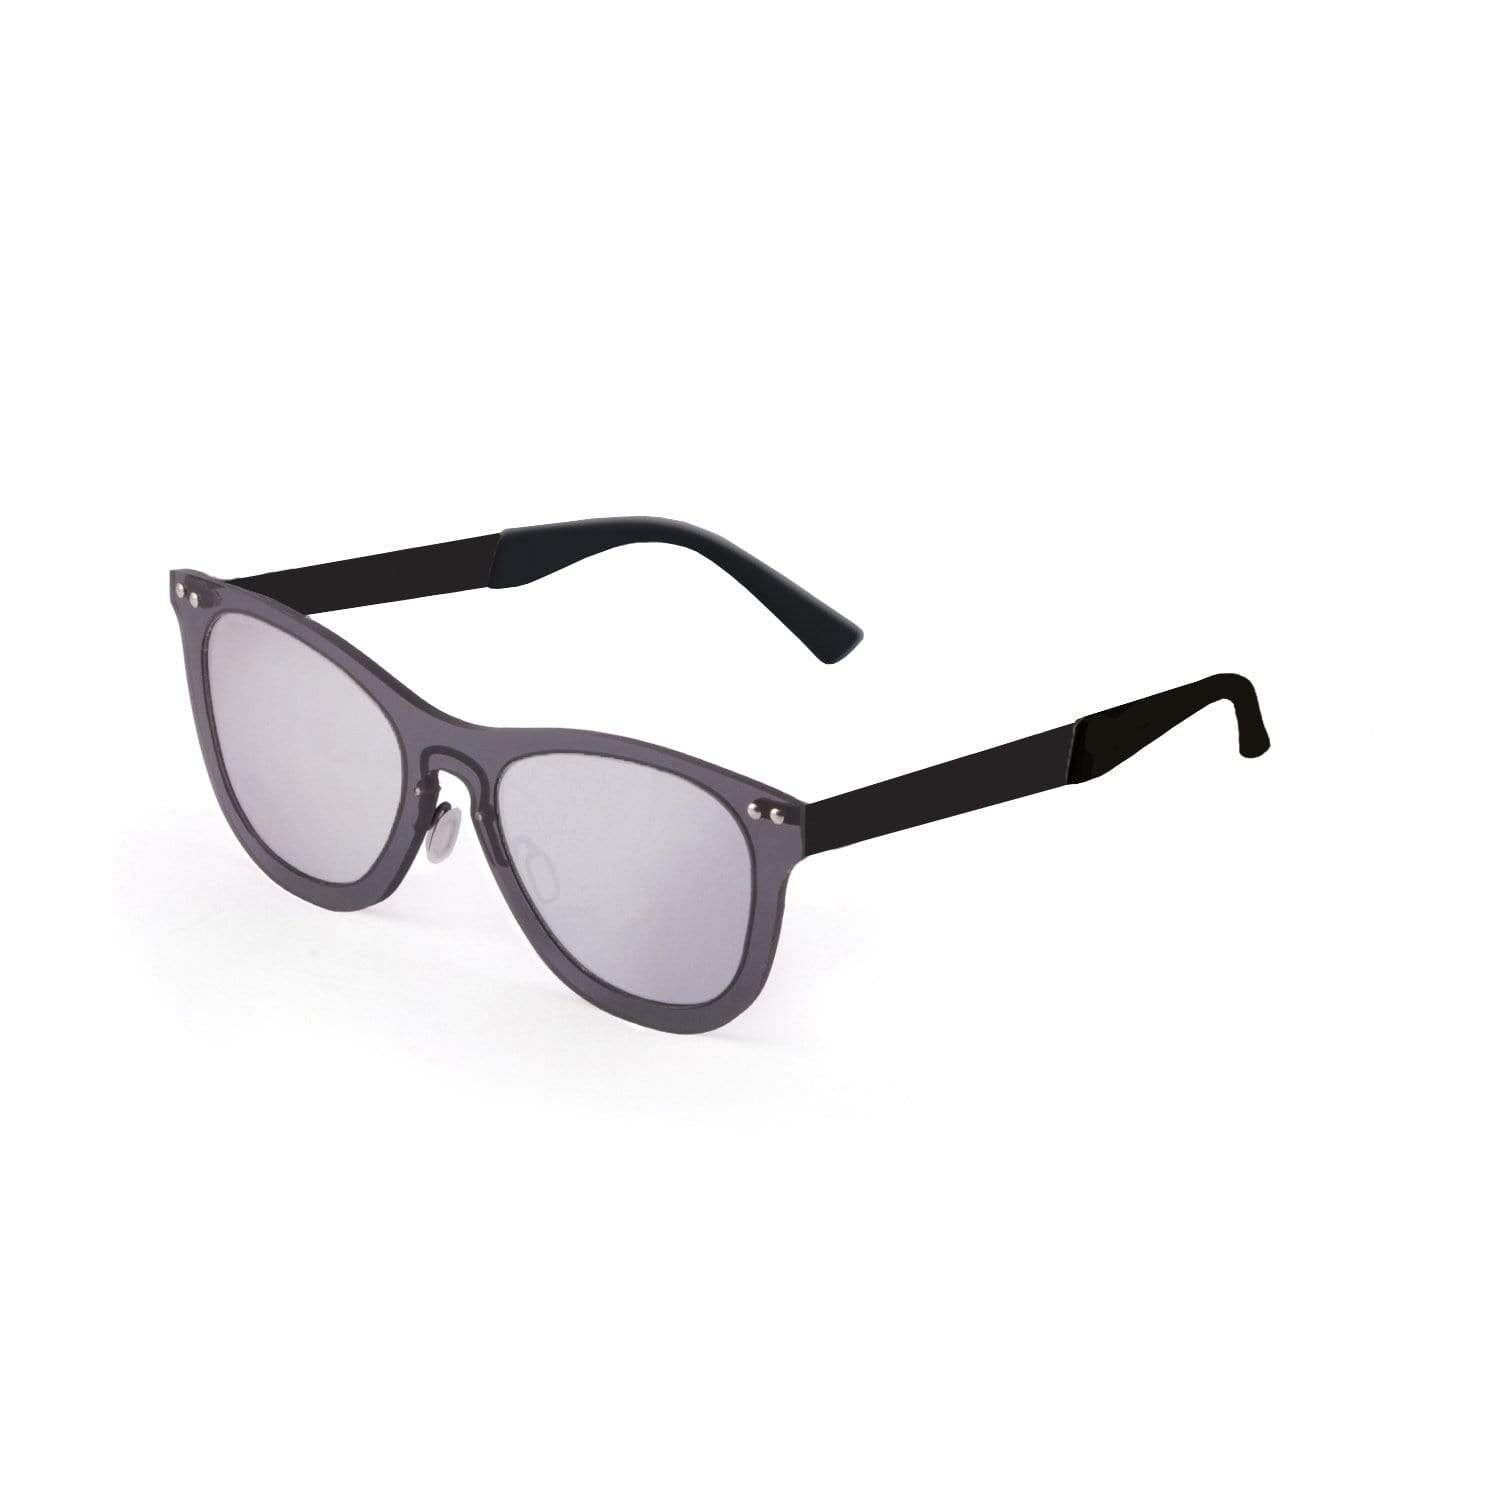 Ocean Sunglasses Accessories Sunglasses grey-1 / NOSIZE Ocean Sunglasses - FLORENCIA